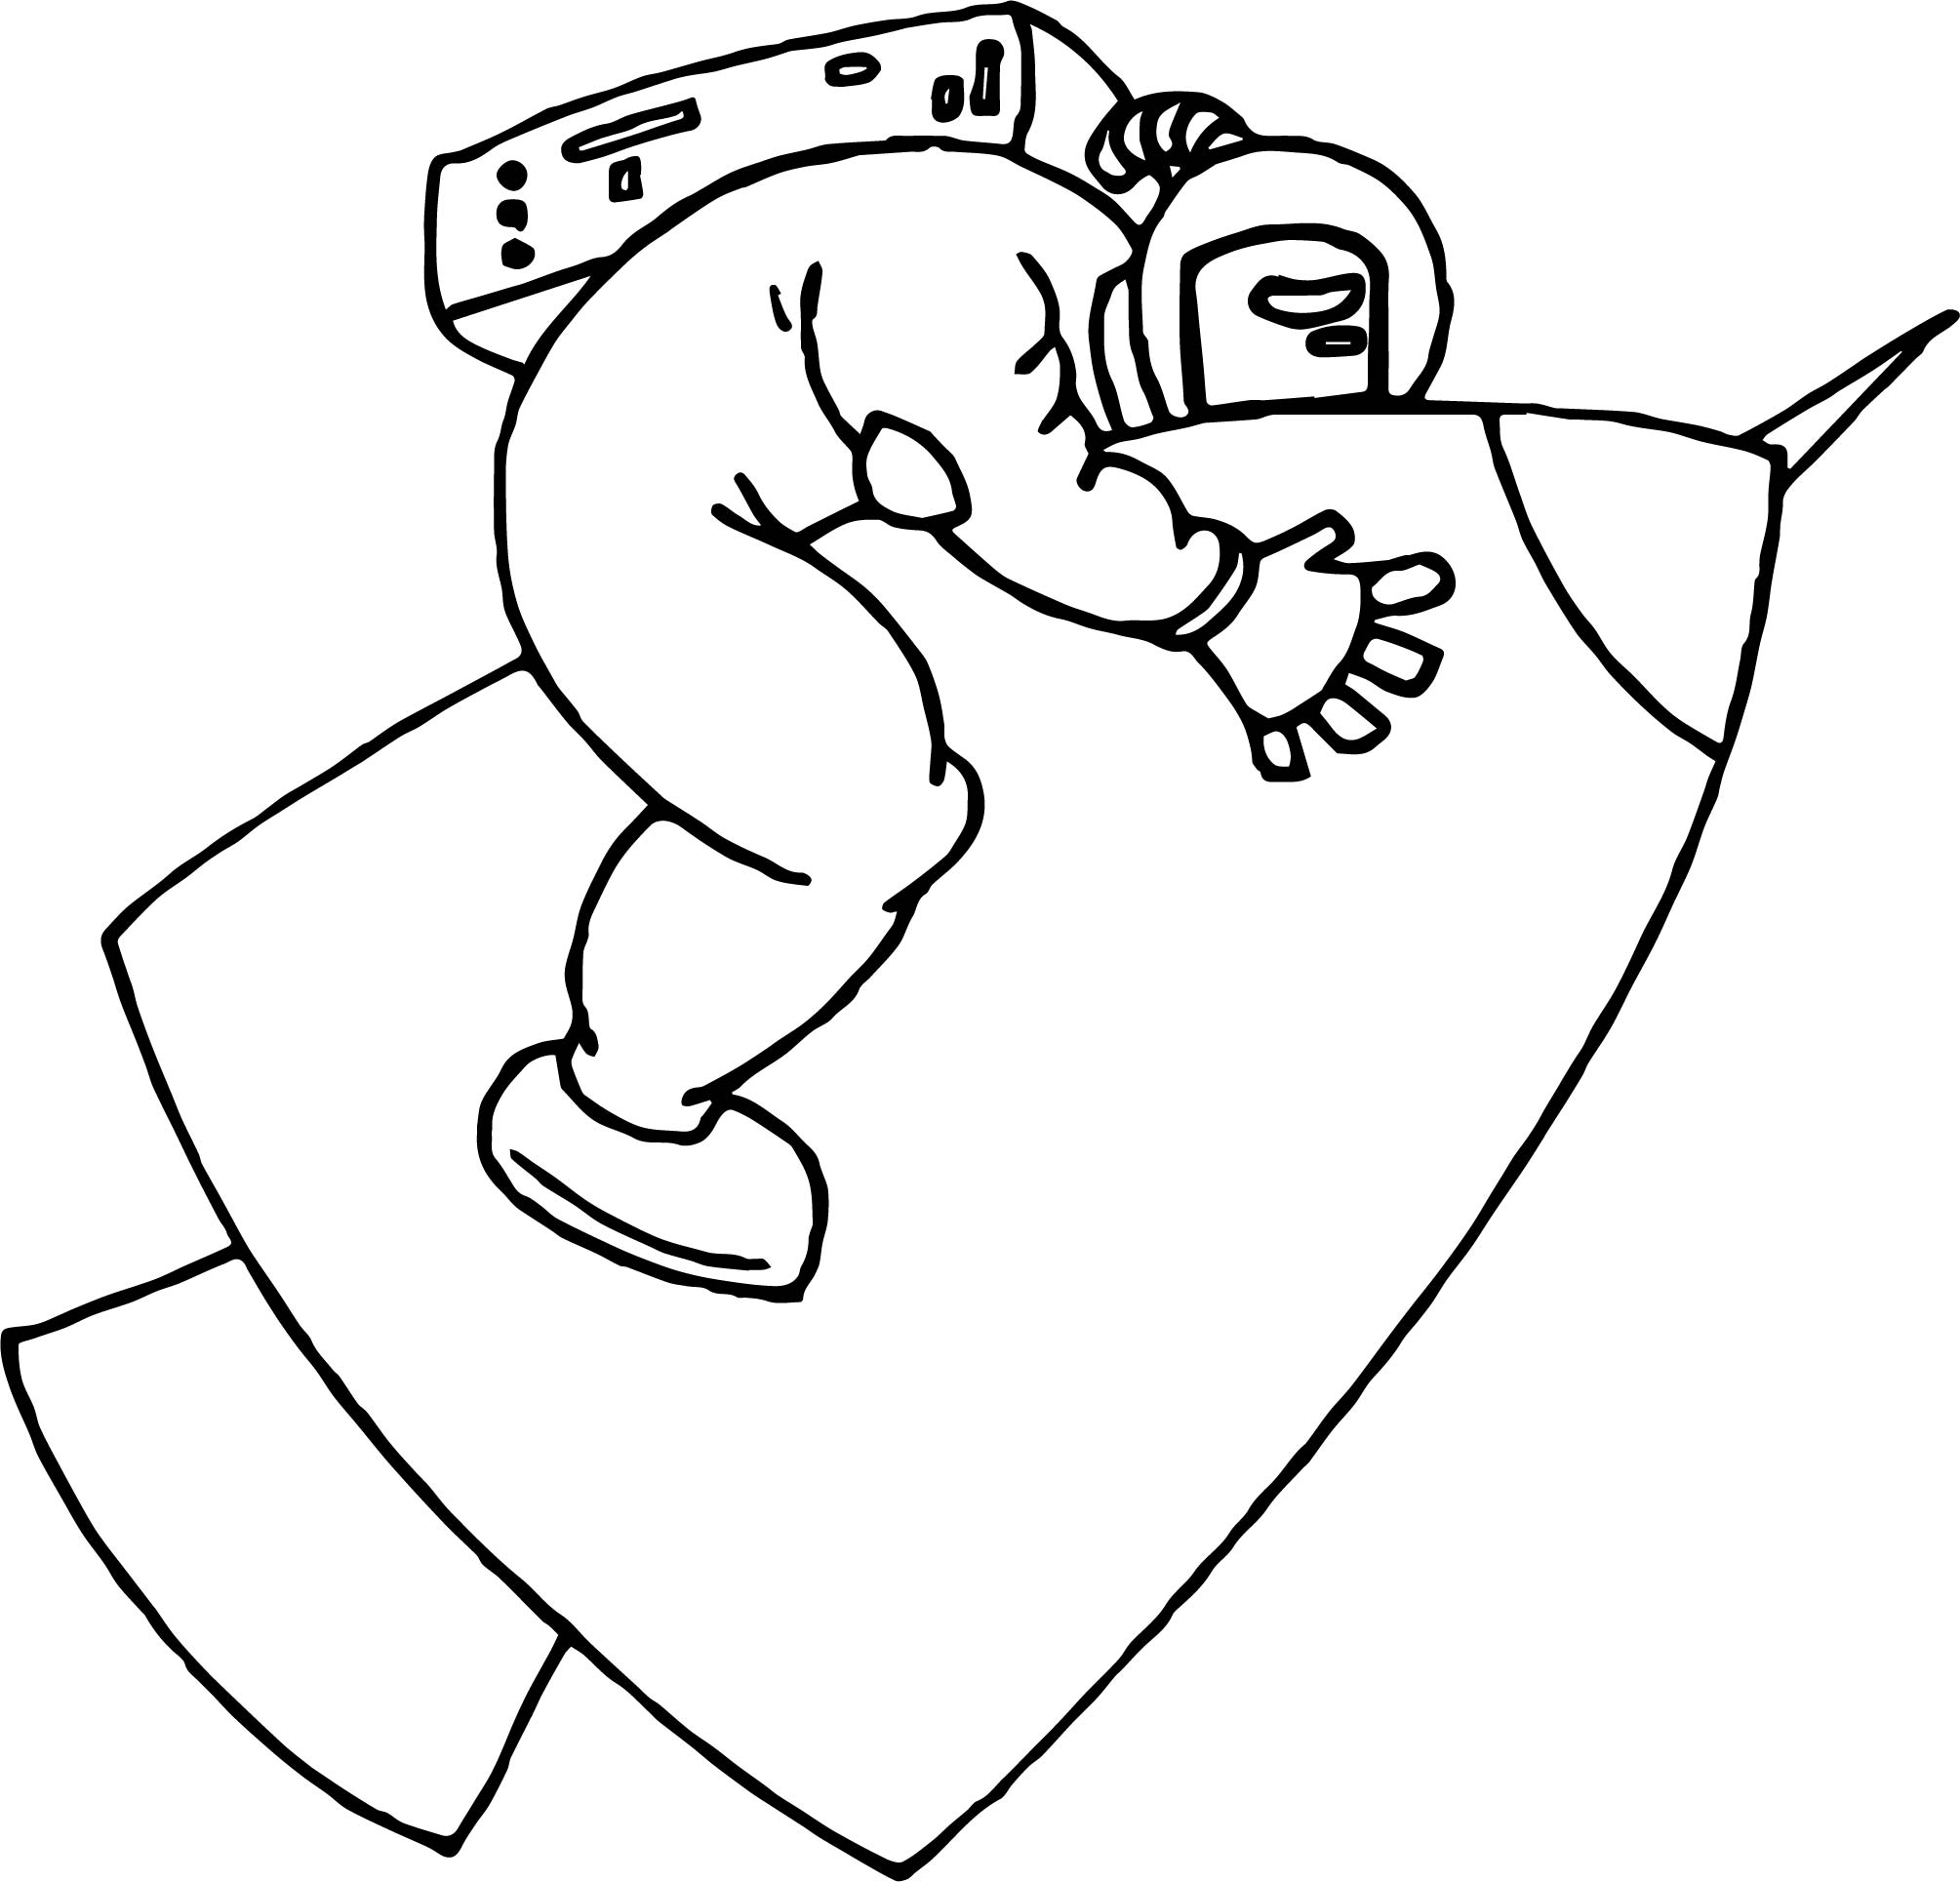 27 astronaut Coloring Pages Images | FREE COLORING PAGES - Part 2